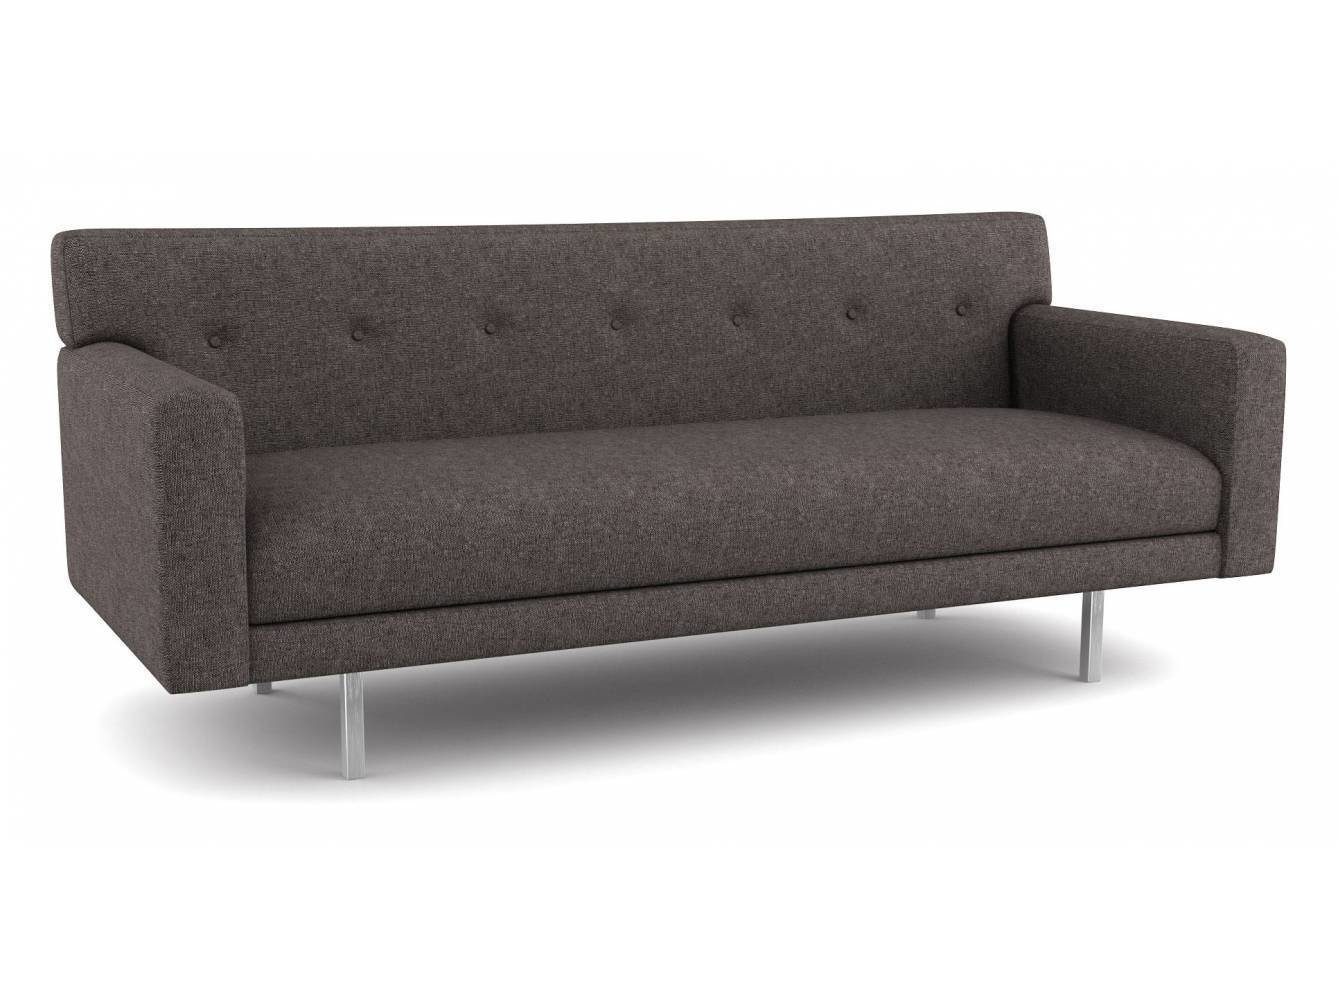 Thanks to its shallow frame, this compact modern sofa fits well into small spaces. It's sophisticated, retro design comes in over 2,000 environmentally-friendly fabric options—or you have the option to provide your own.